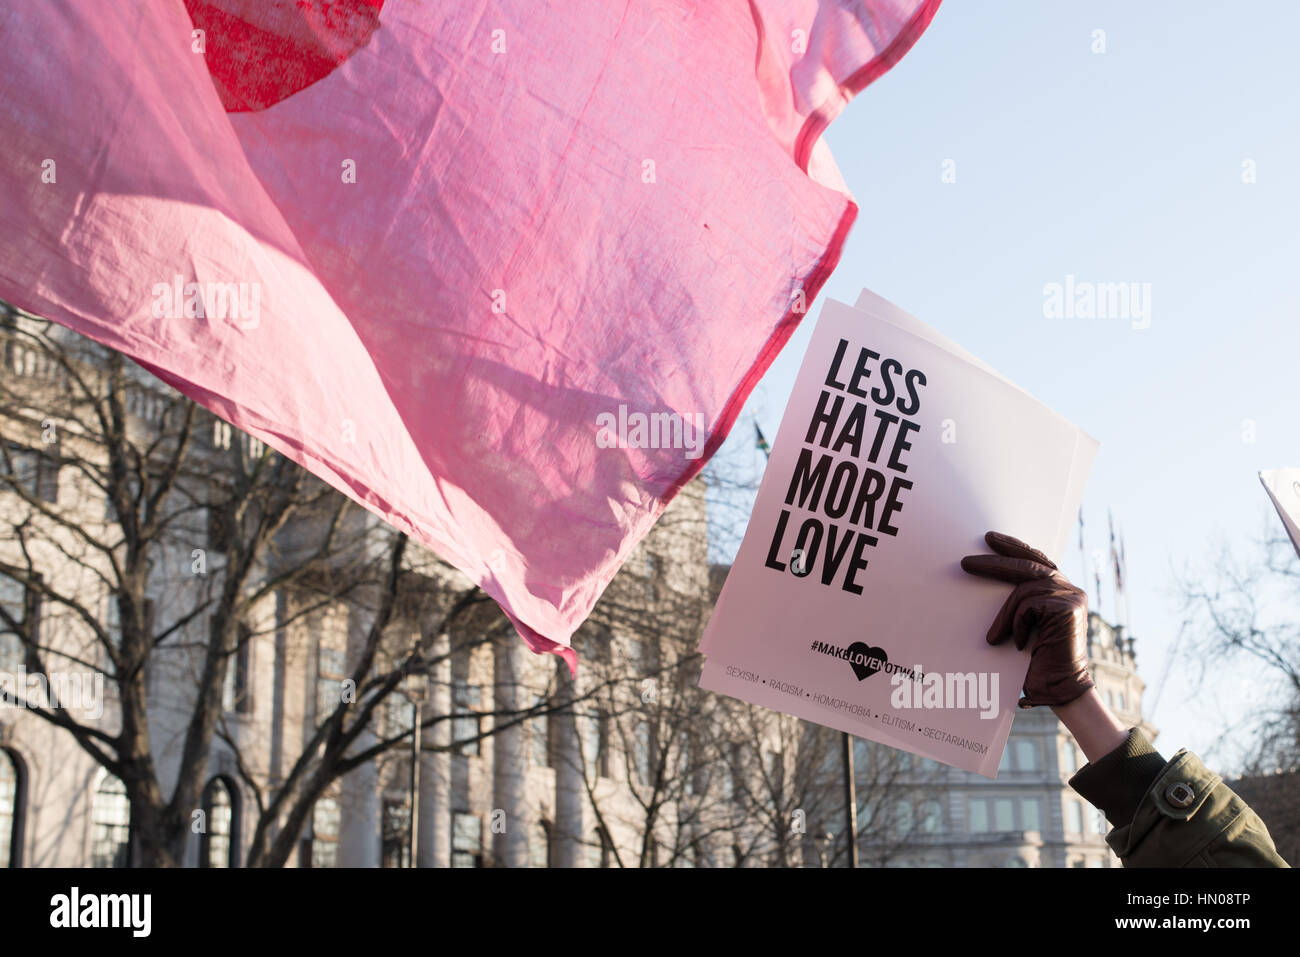 London, UK - 21 January 2017. Hand holding sign saying Less hate more love. Thousands of people protesting in Trafalgar - Stock Image